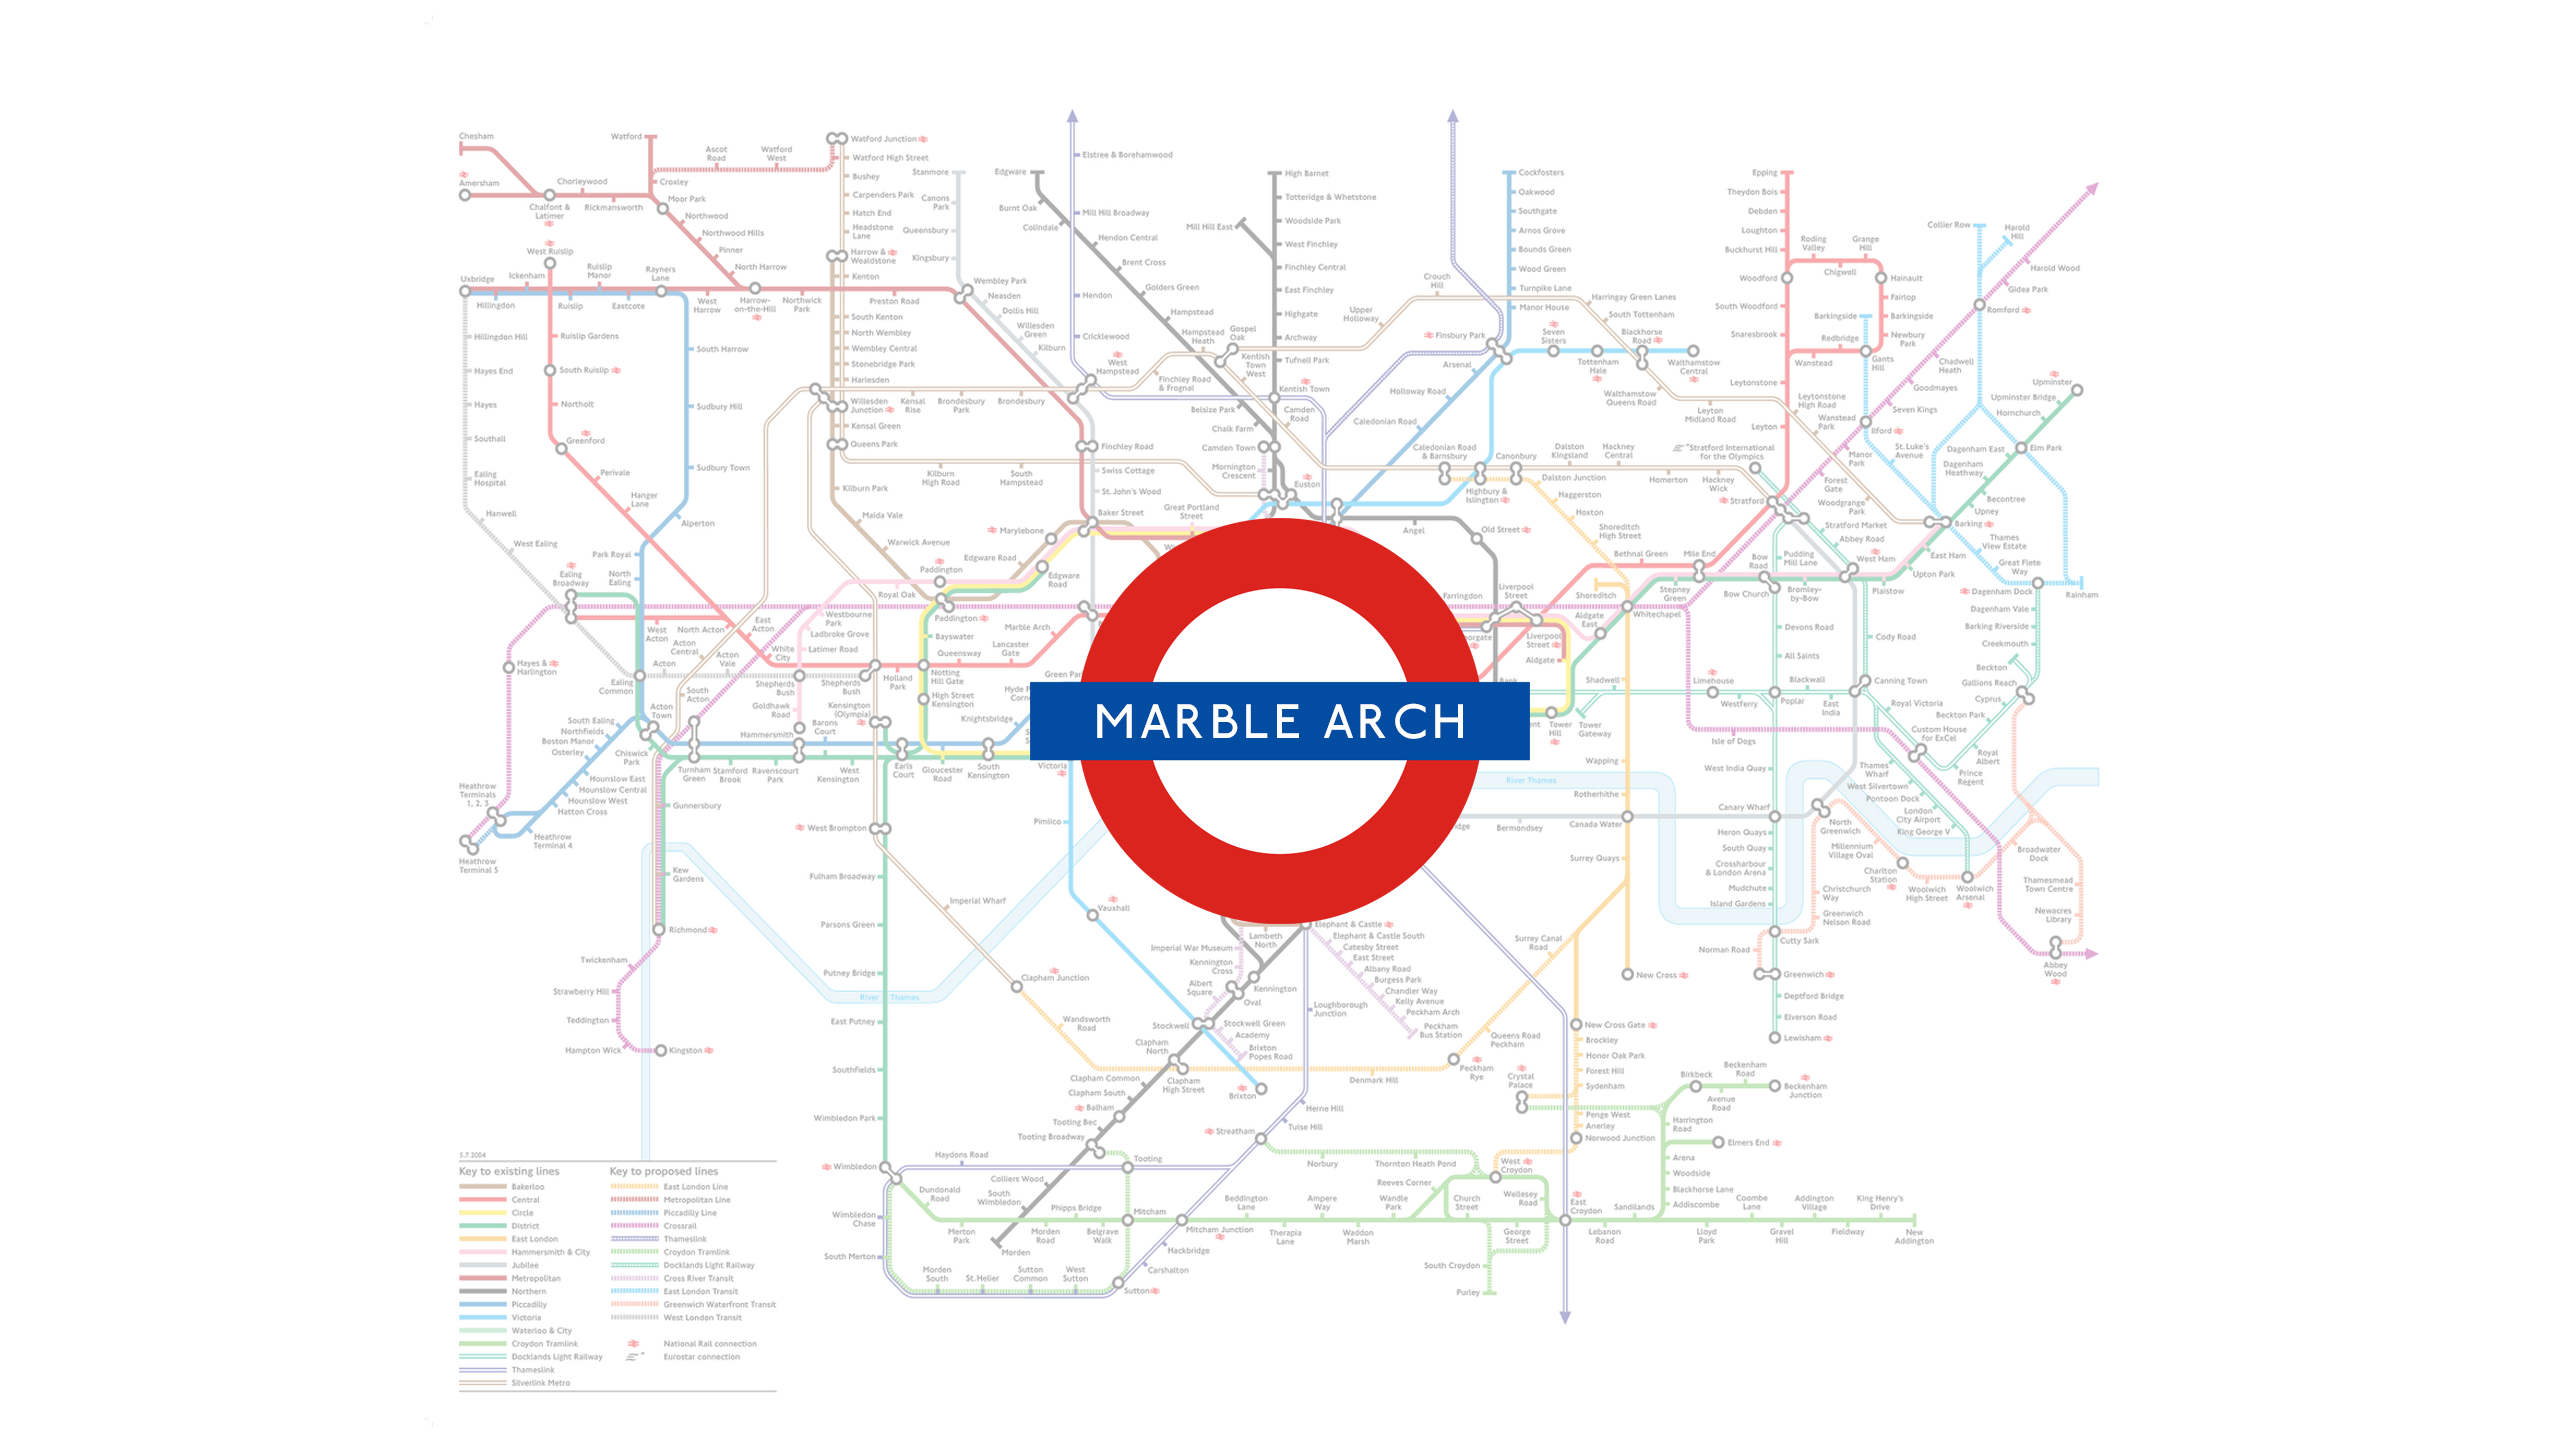 Marble Arch (Map)